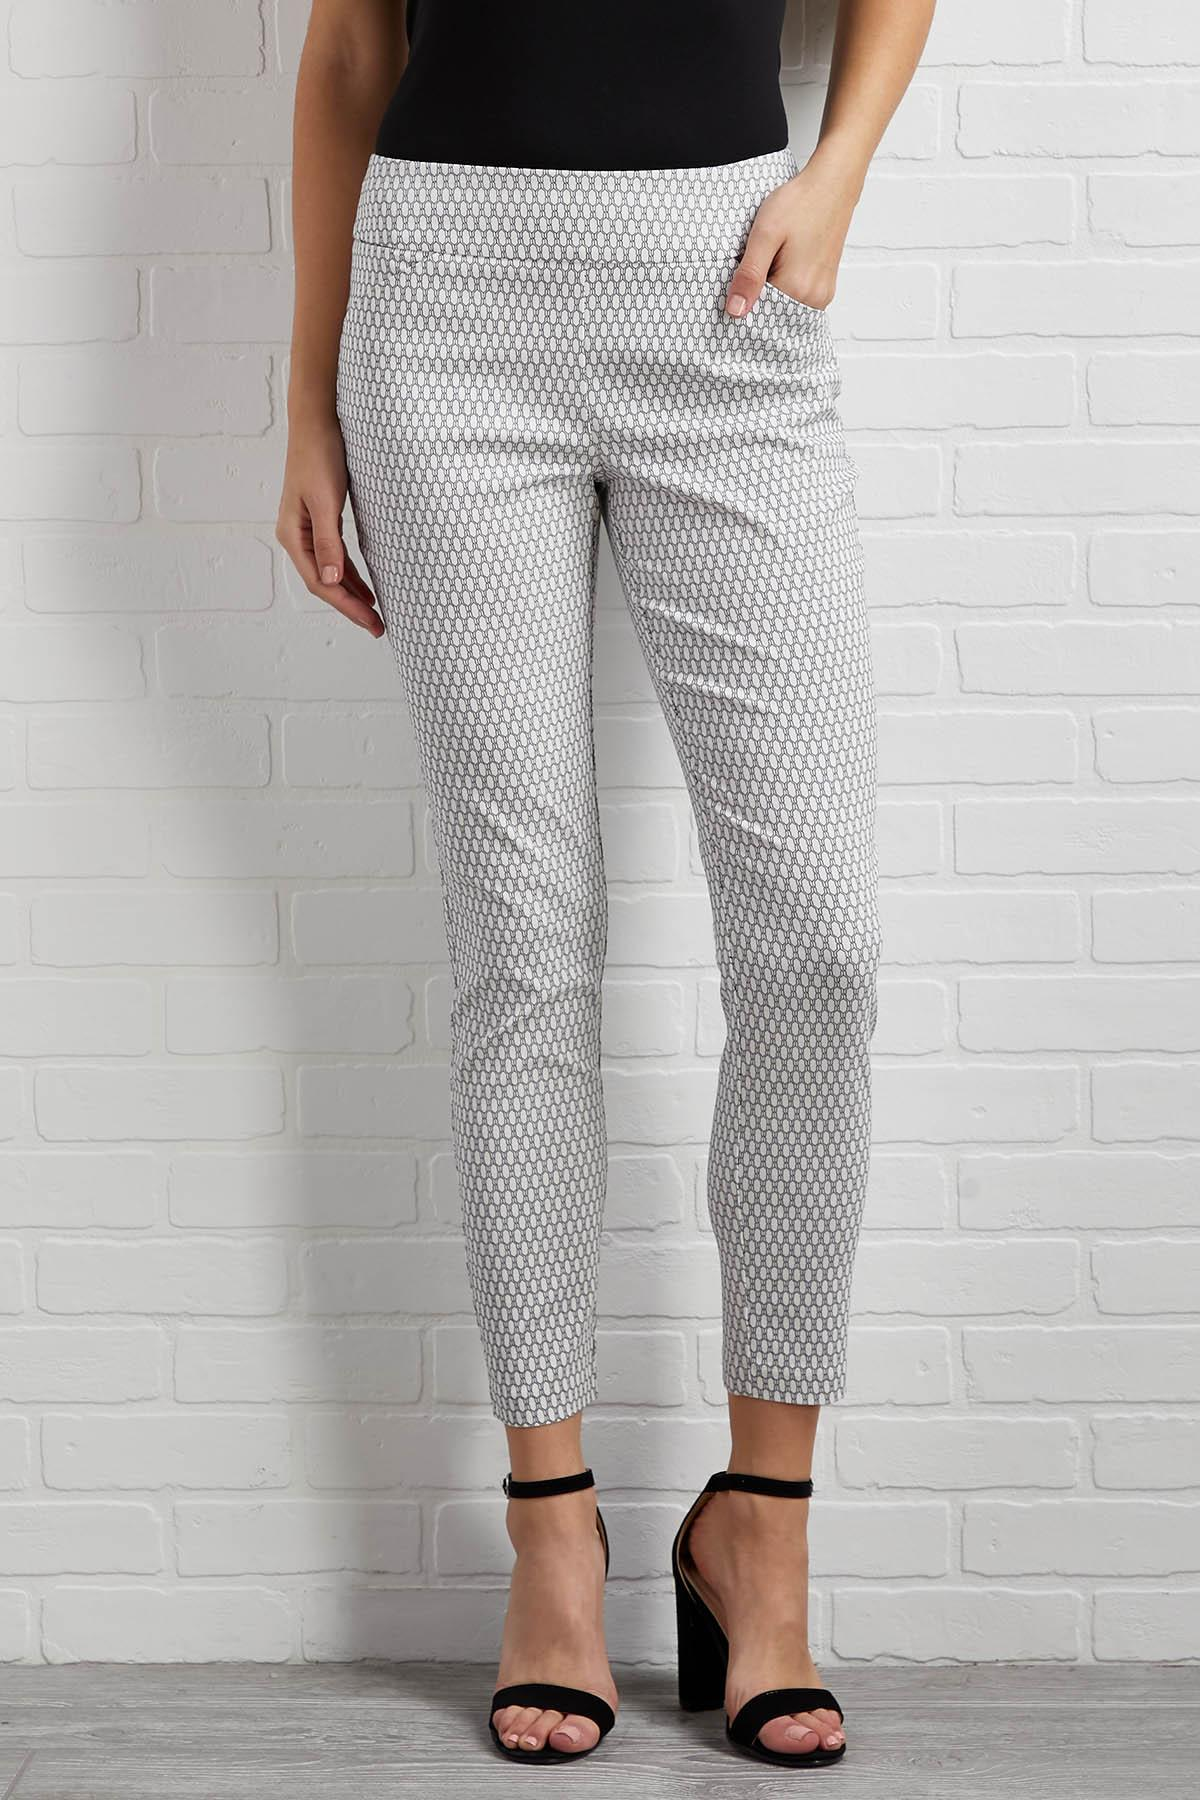 Web Of Lies Ankle Pants